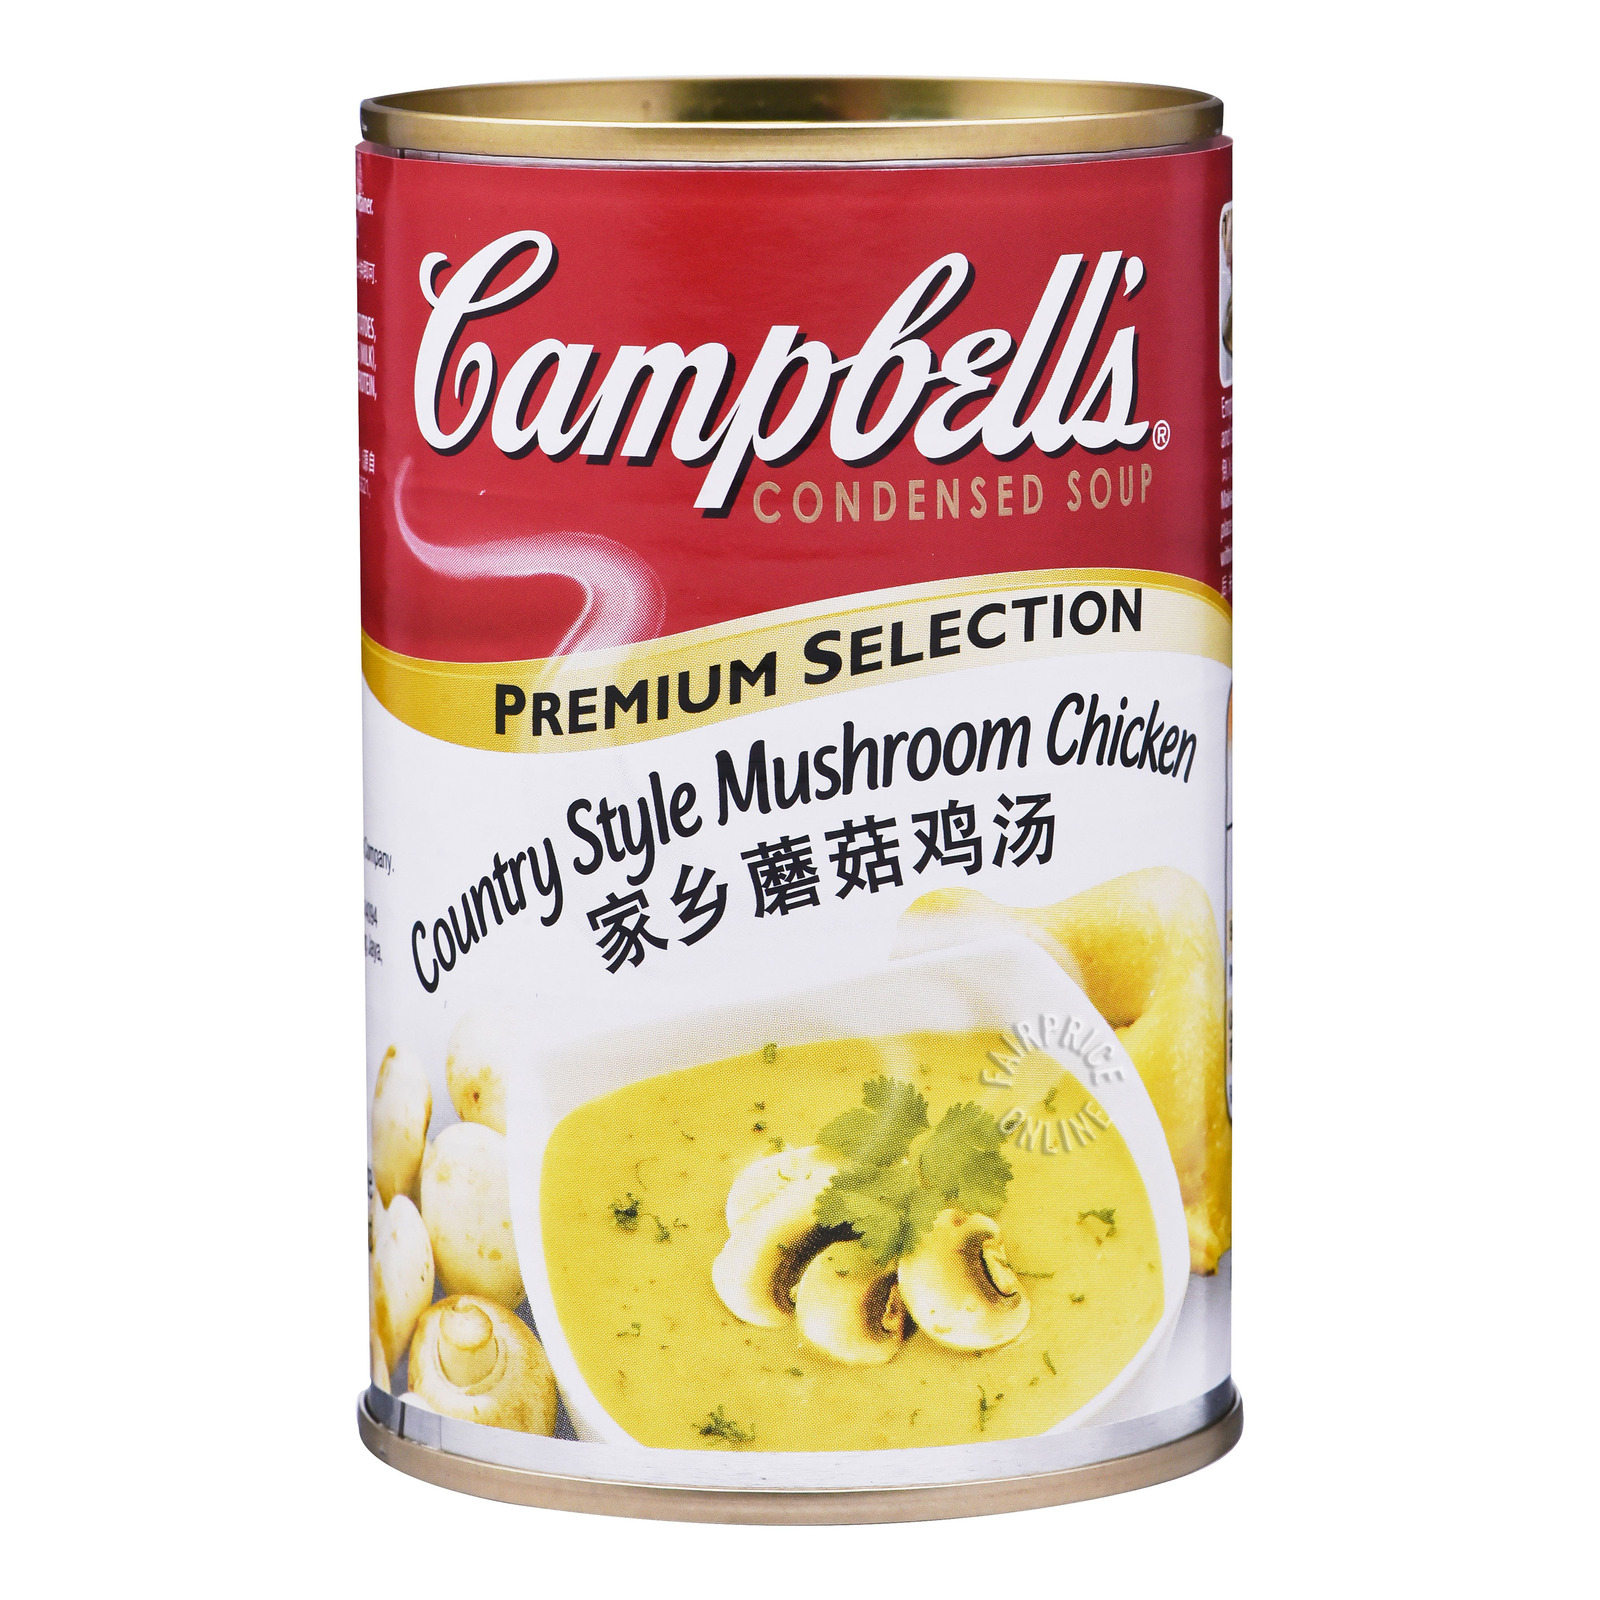 Campbell's Condensed Soup - Country Style Mushroom Chicken